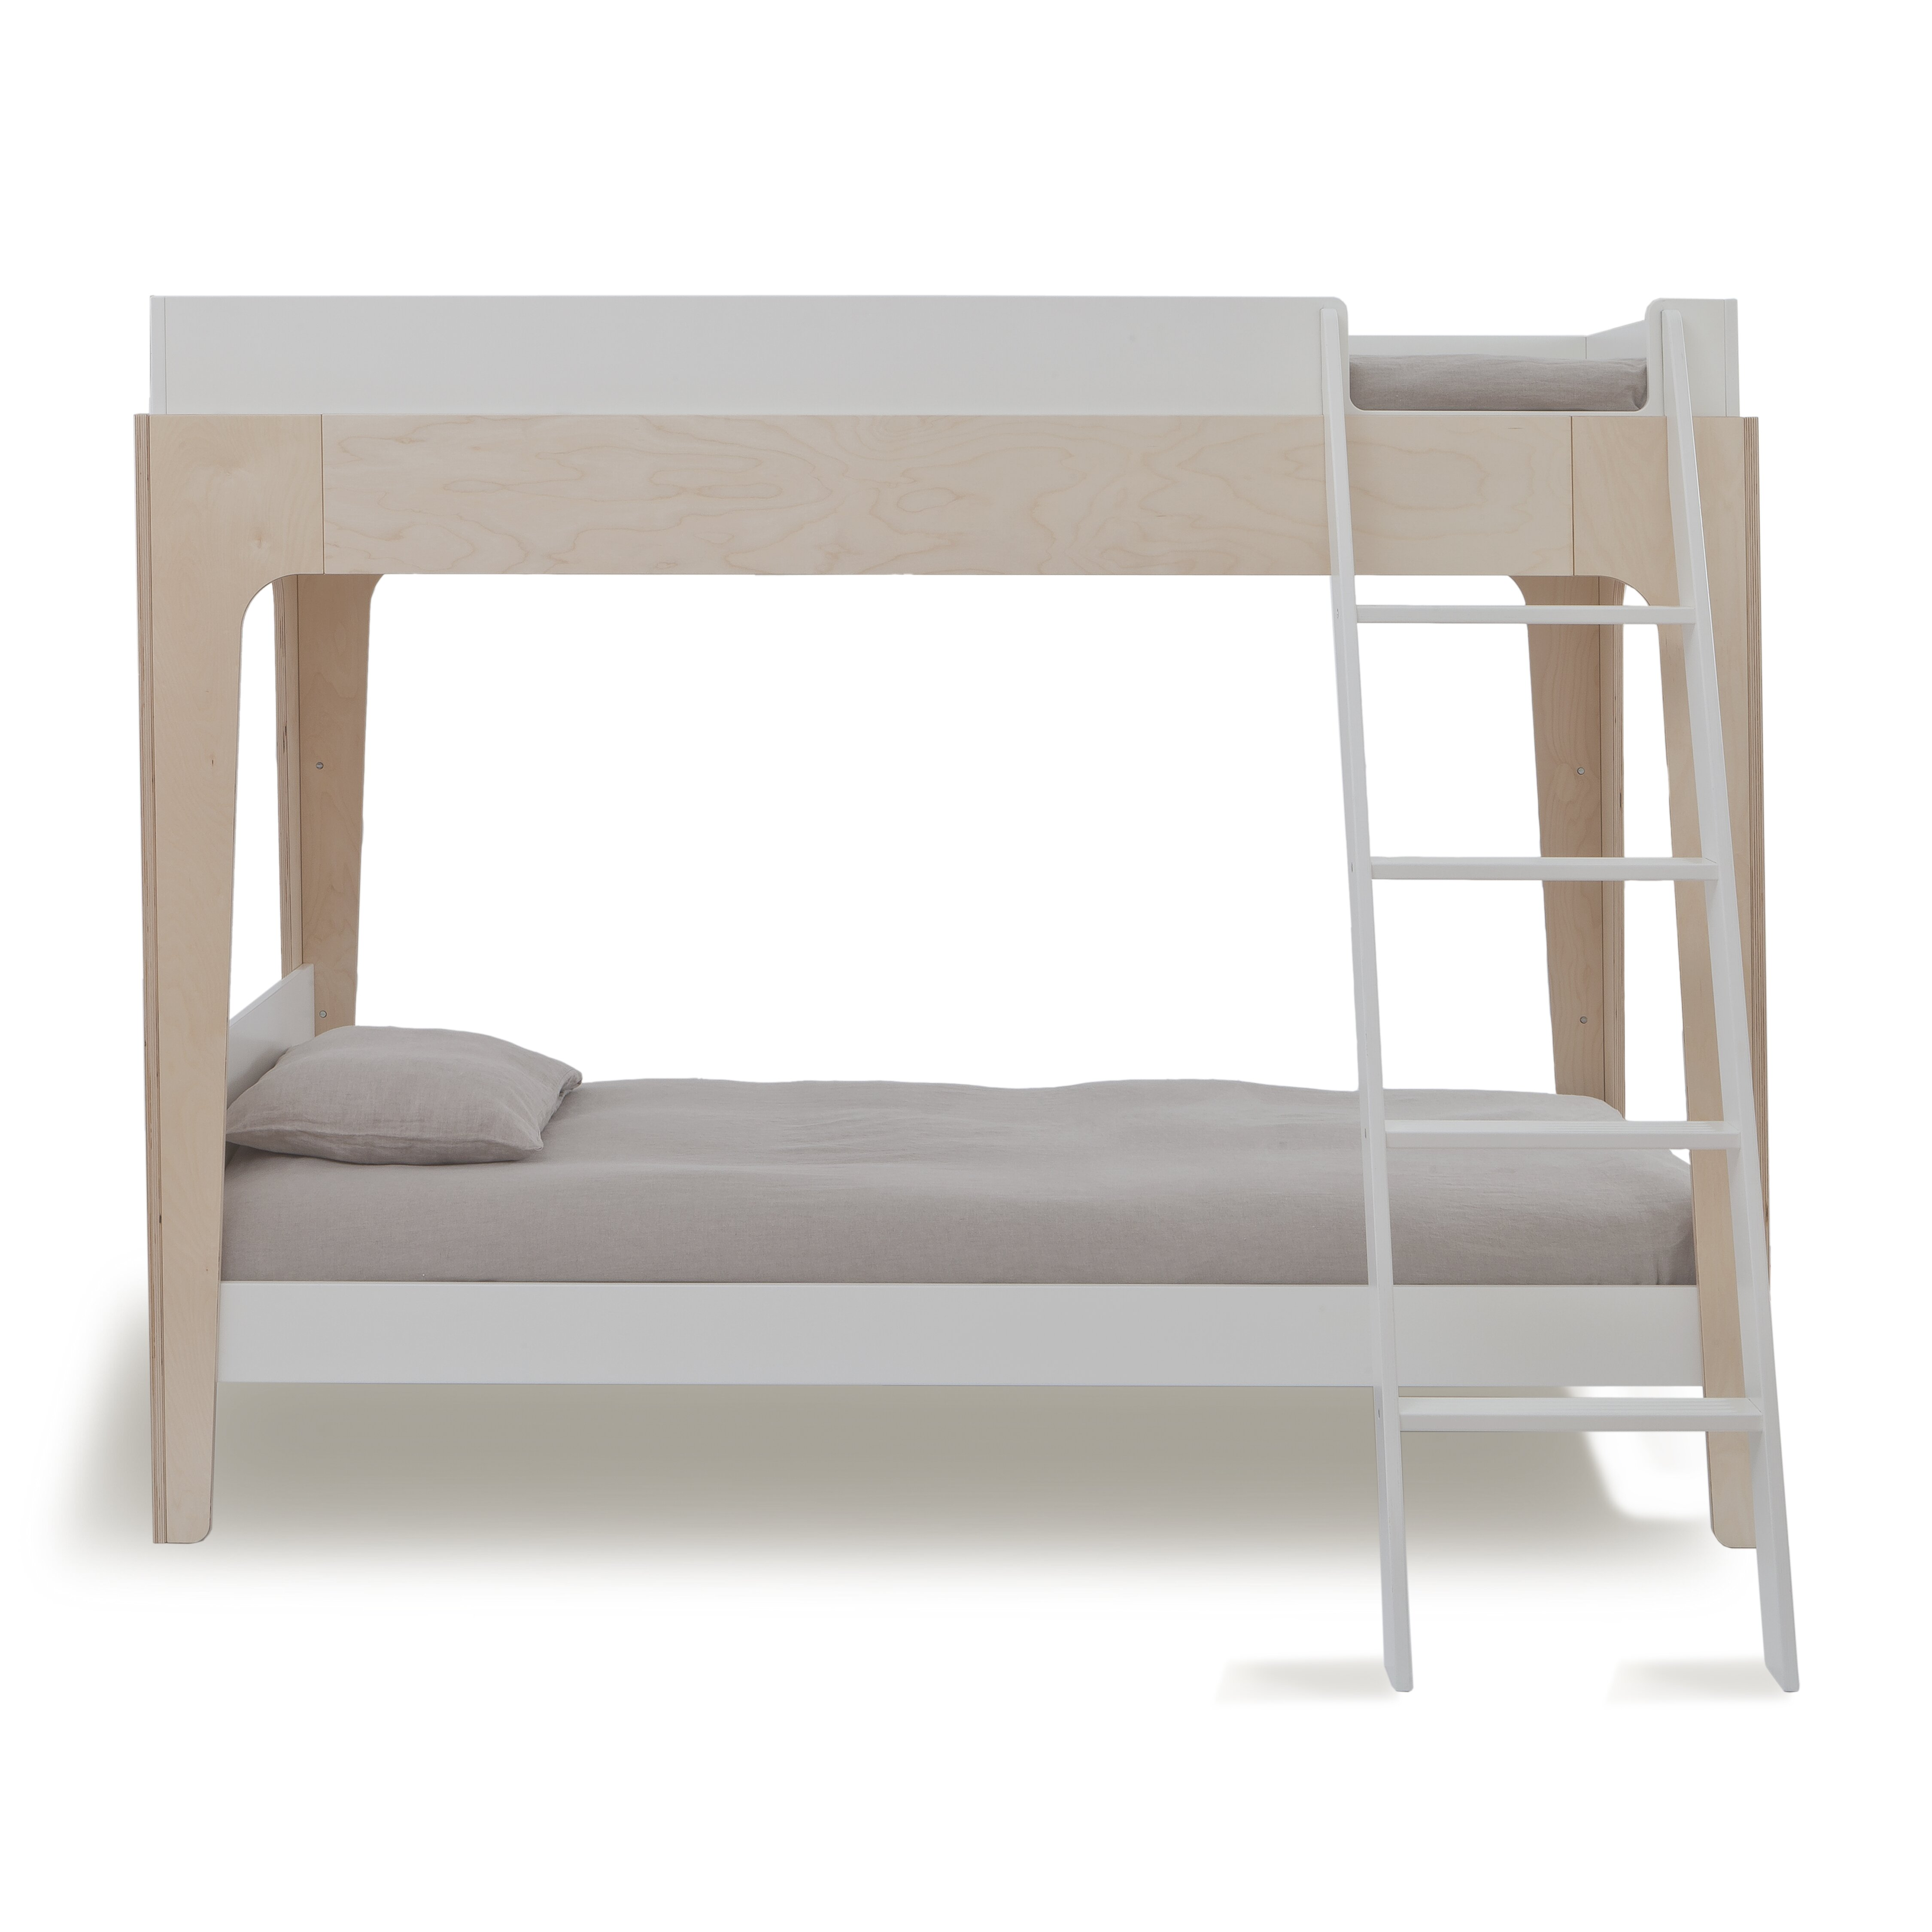 Oeuf Perch Twin Bunk Bed Reviews AllModern